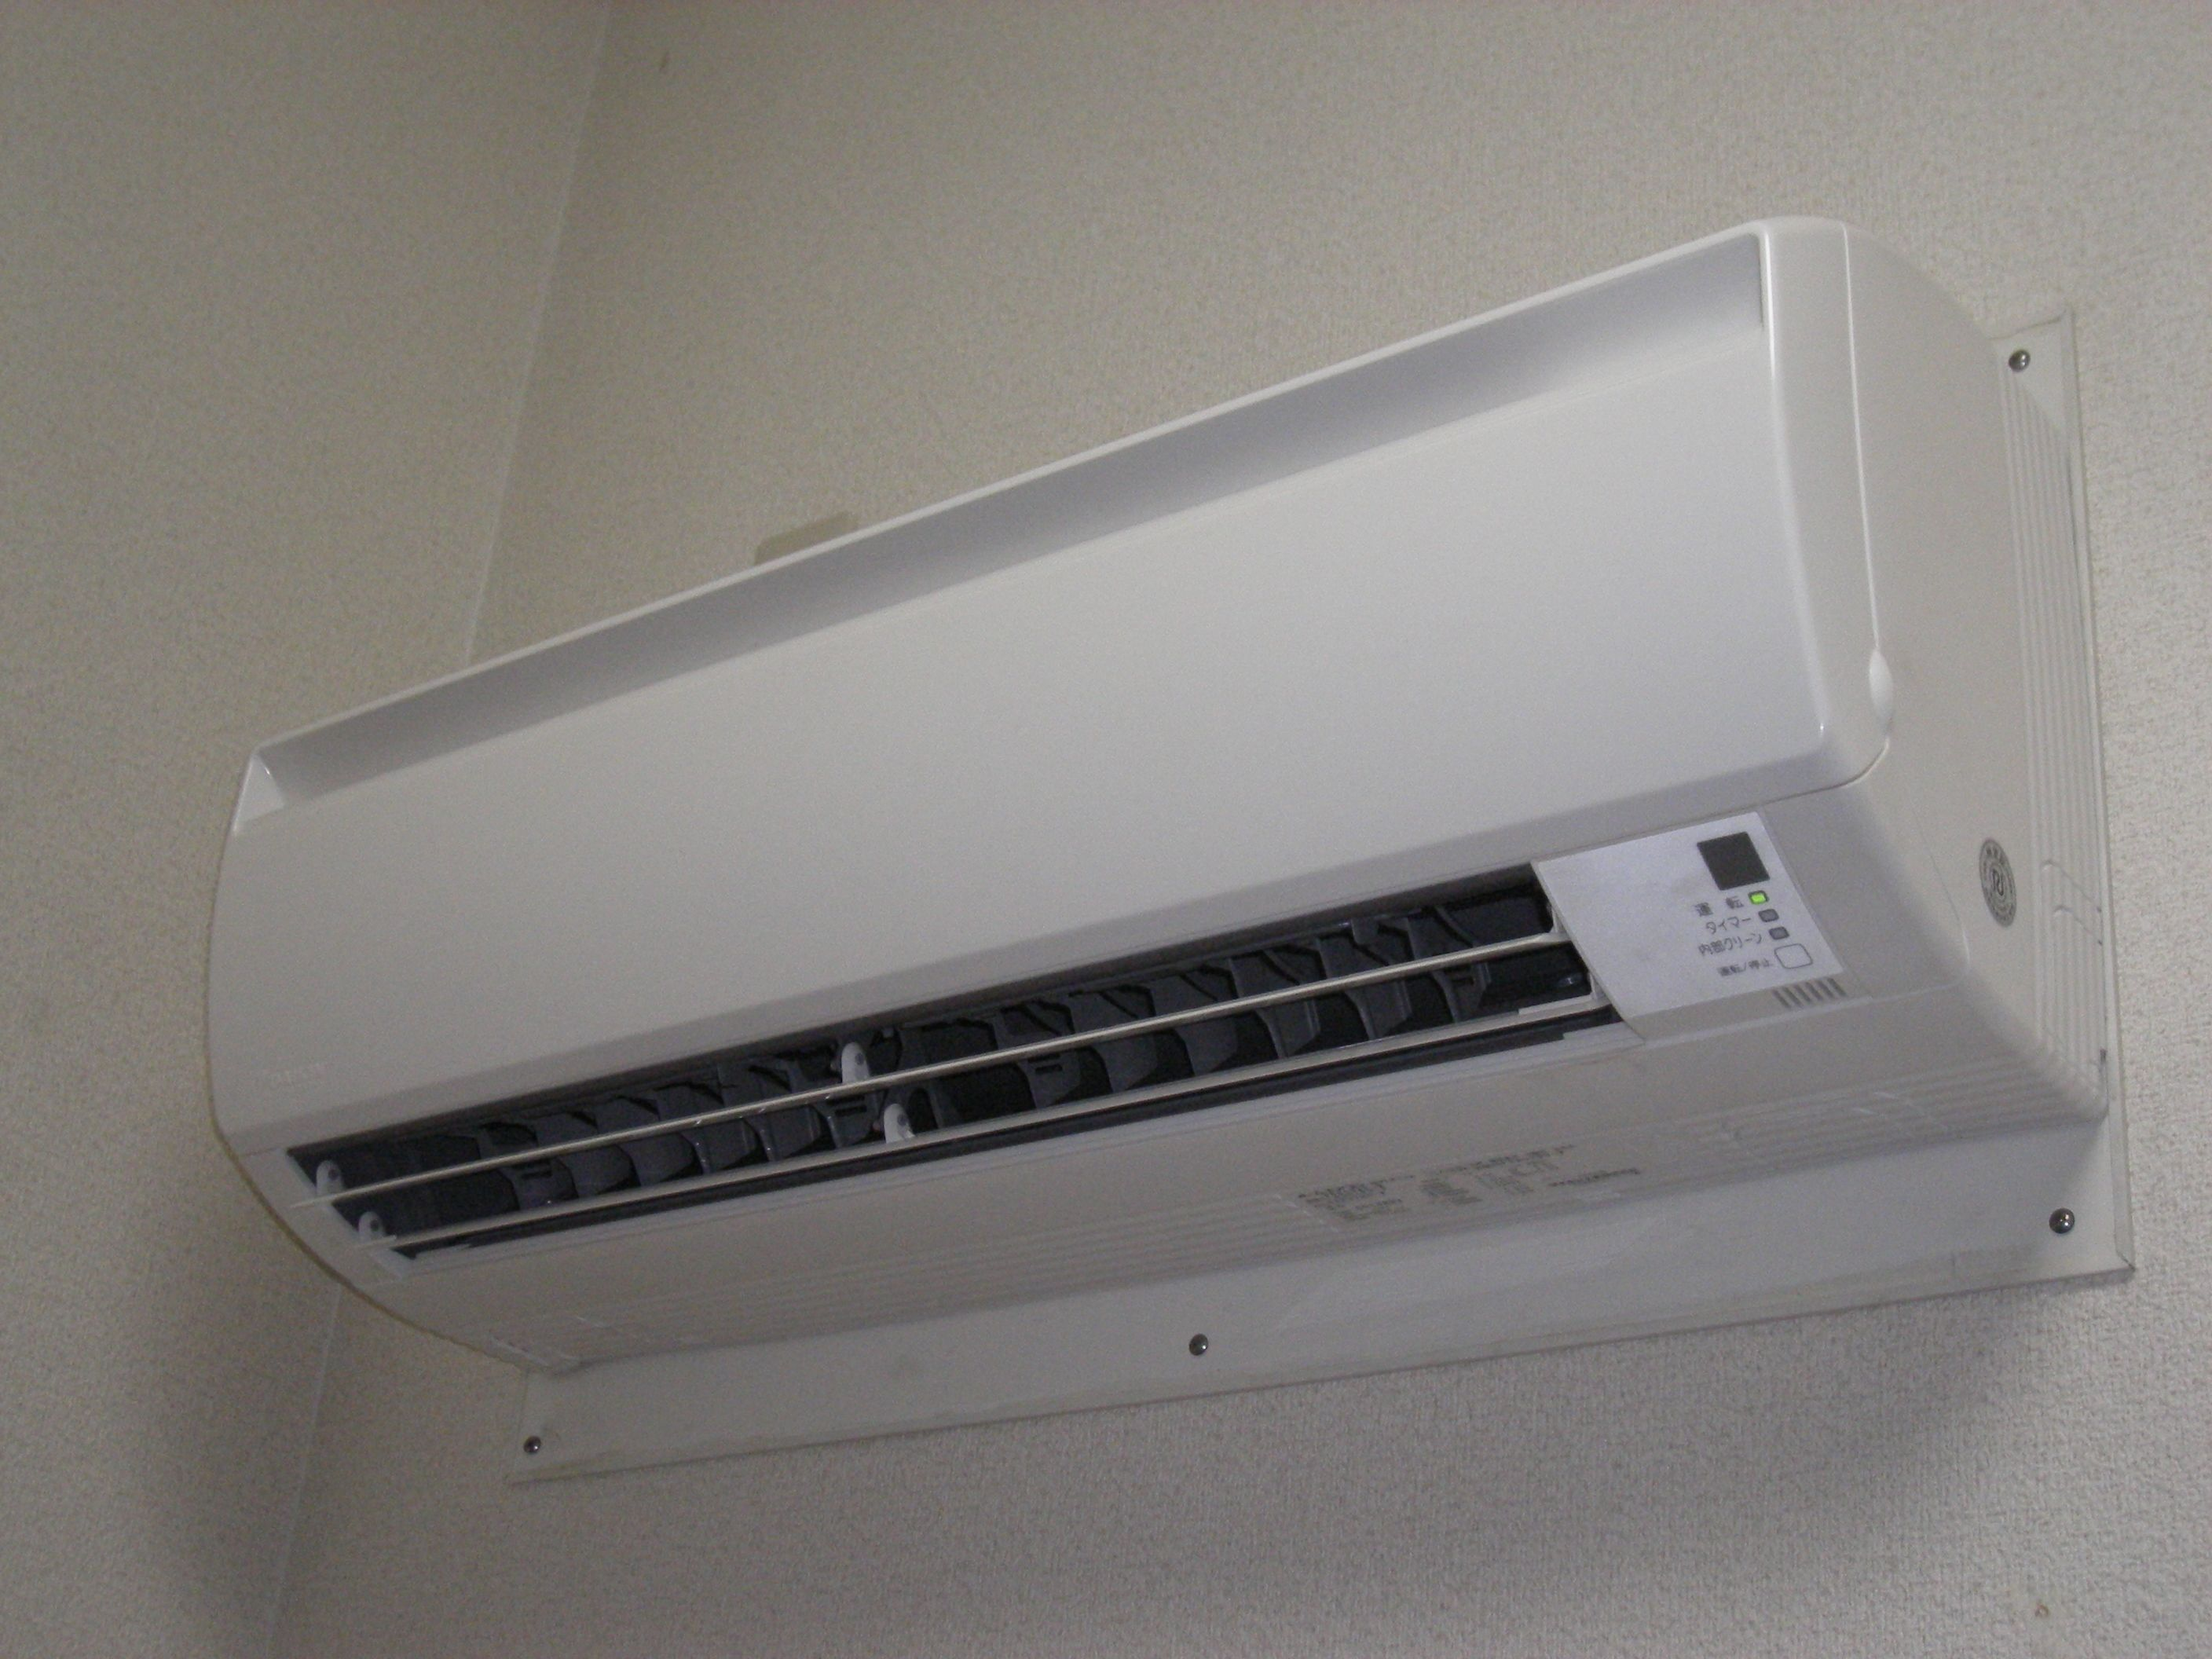 Regular Cleaning of Reverse Cycle Air Conditioners